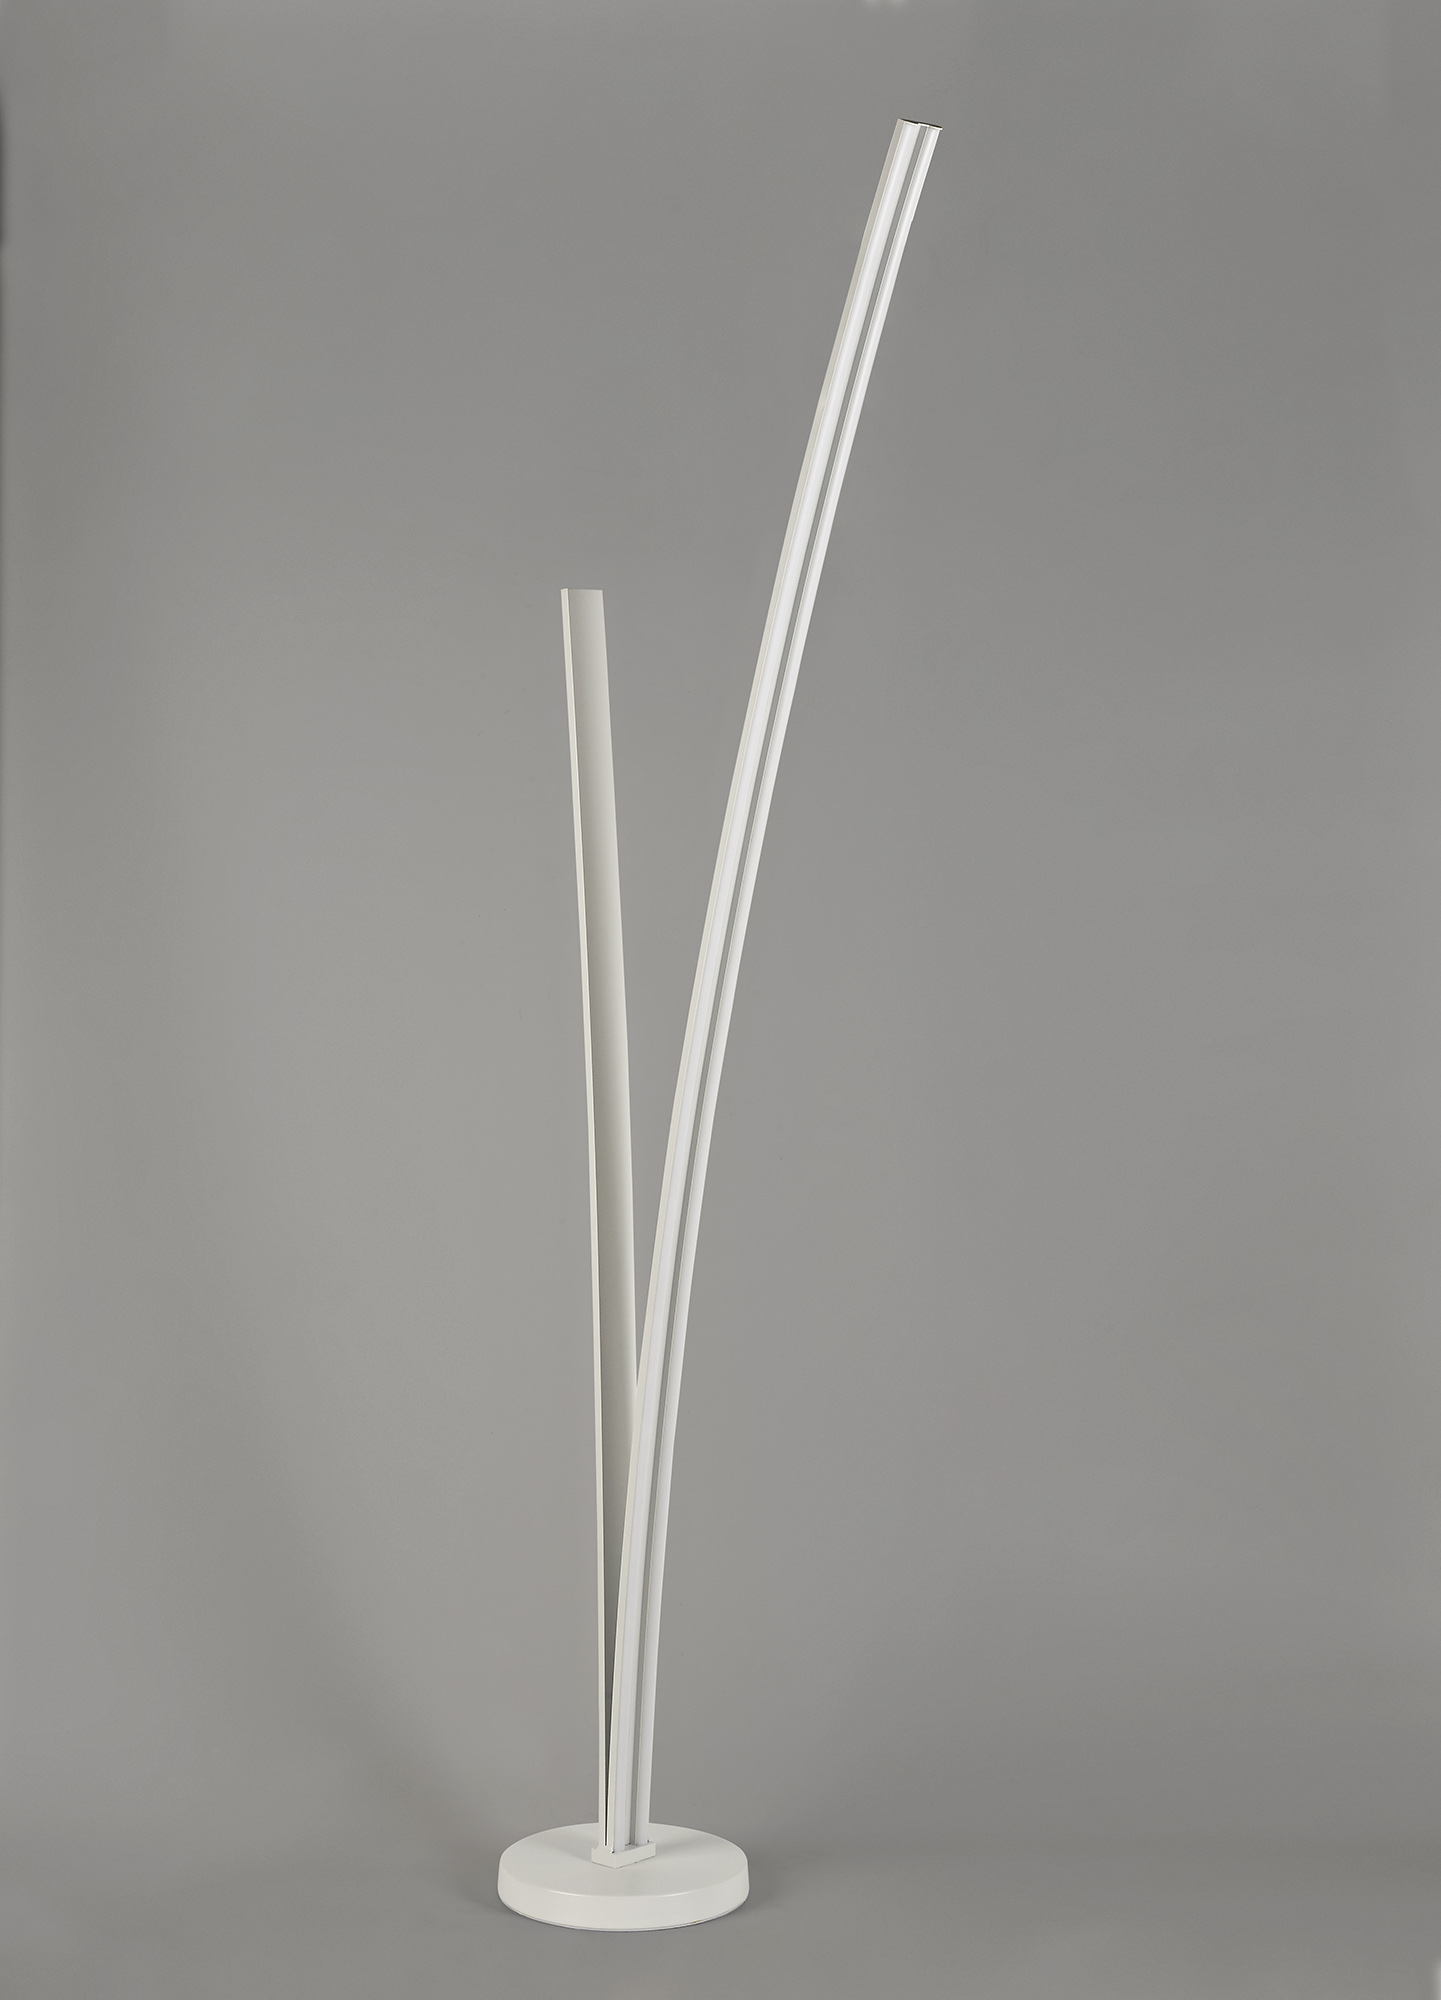 2 Light Floor Lamp Dimmable, 16W/20W LED, 4000K, 2270lm, White, 3yrs Warranty